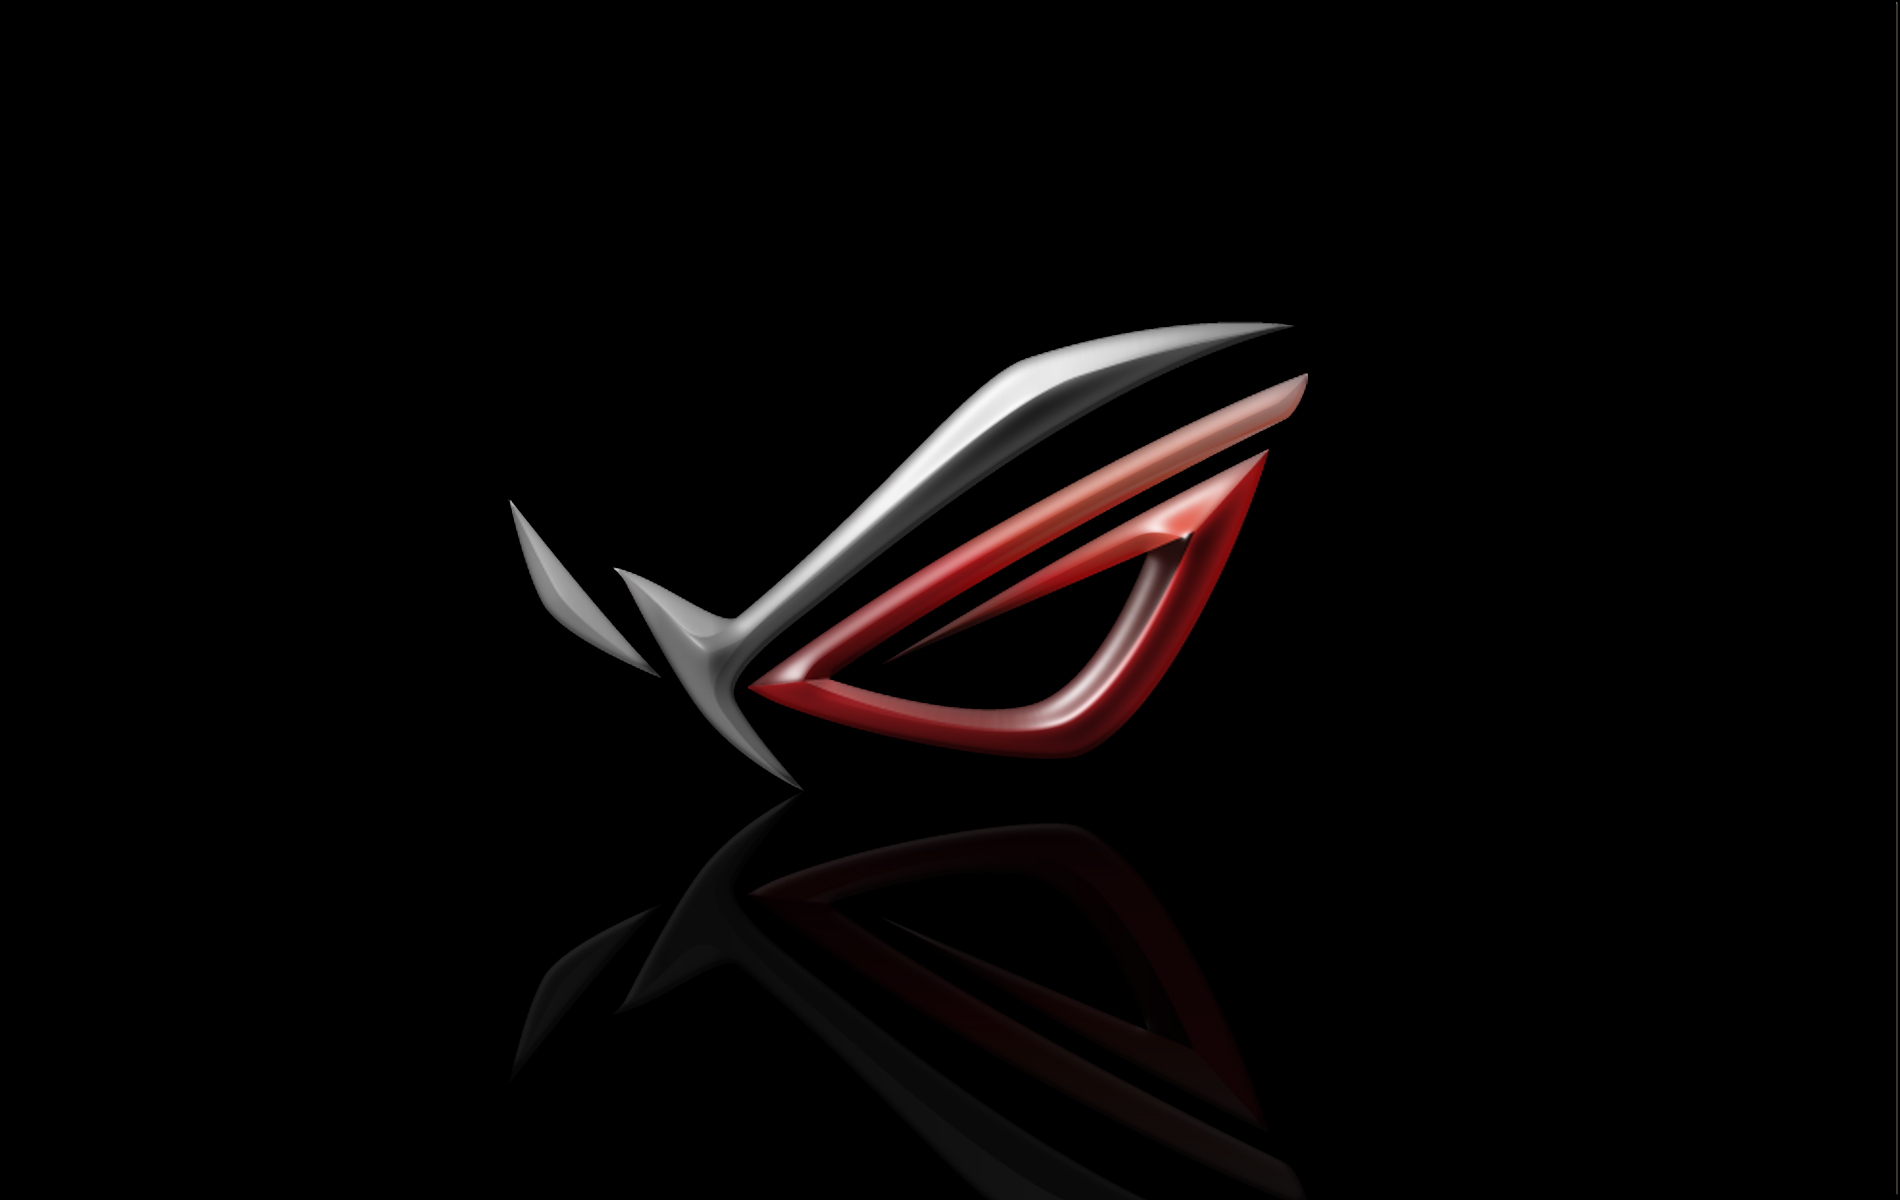 1900x1200 > Asus ROG Wallpapers